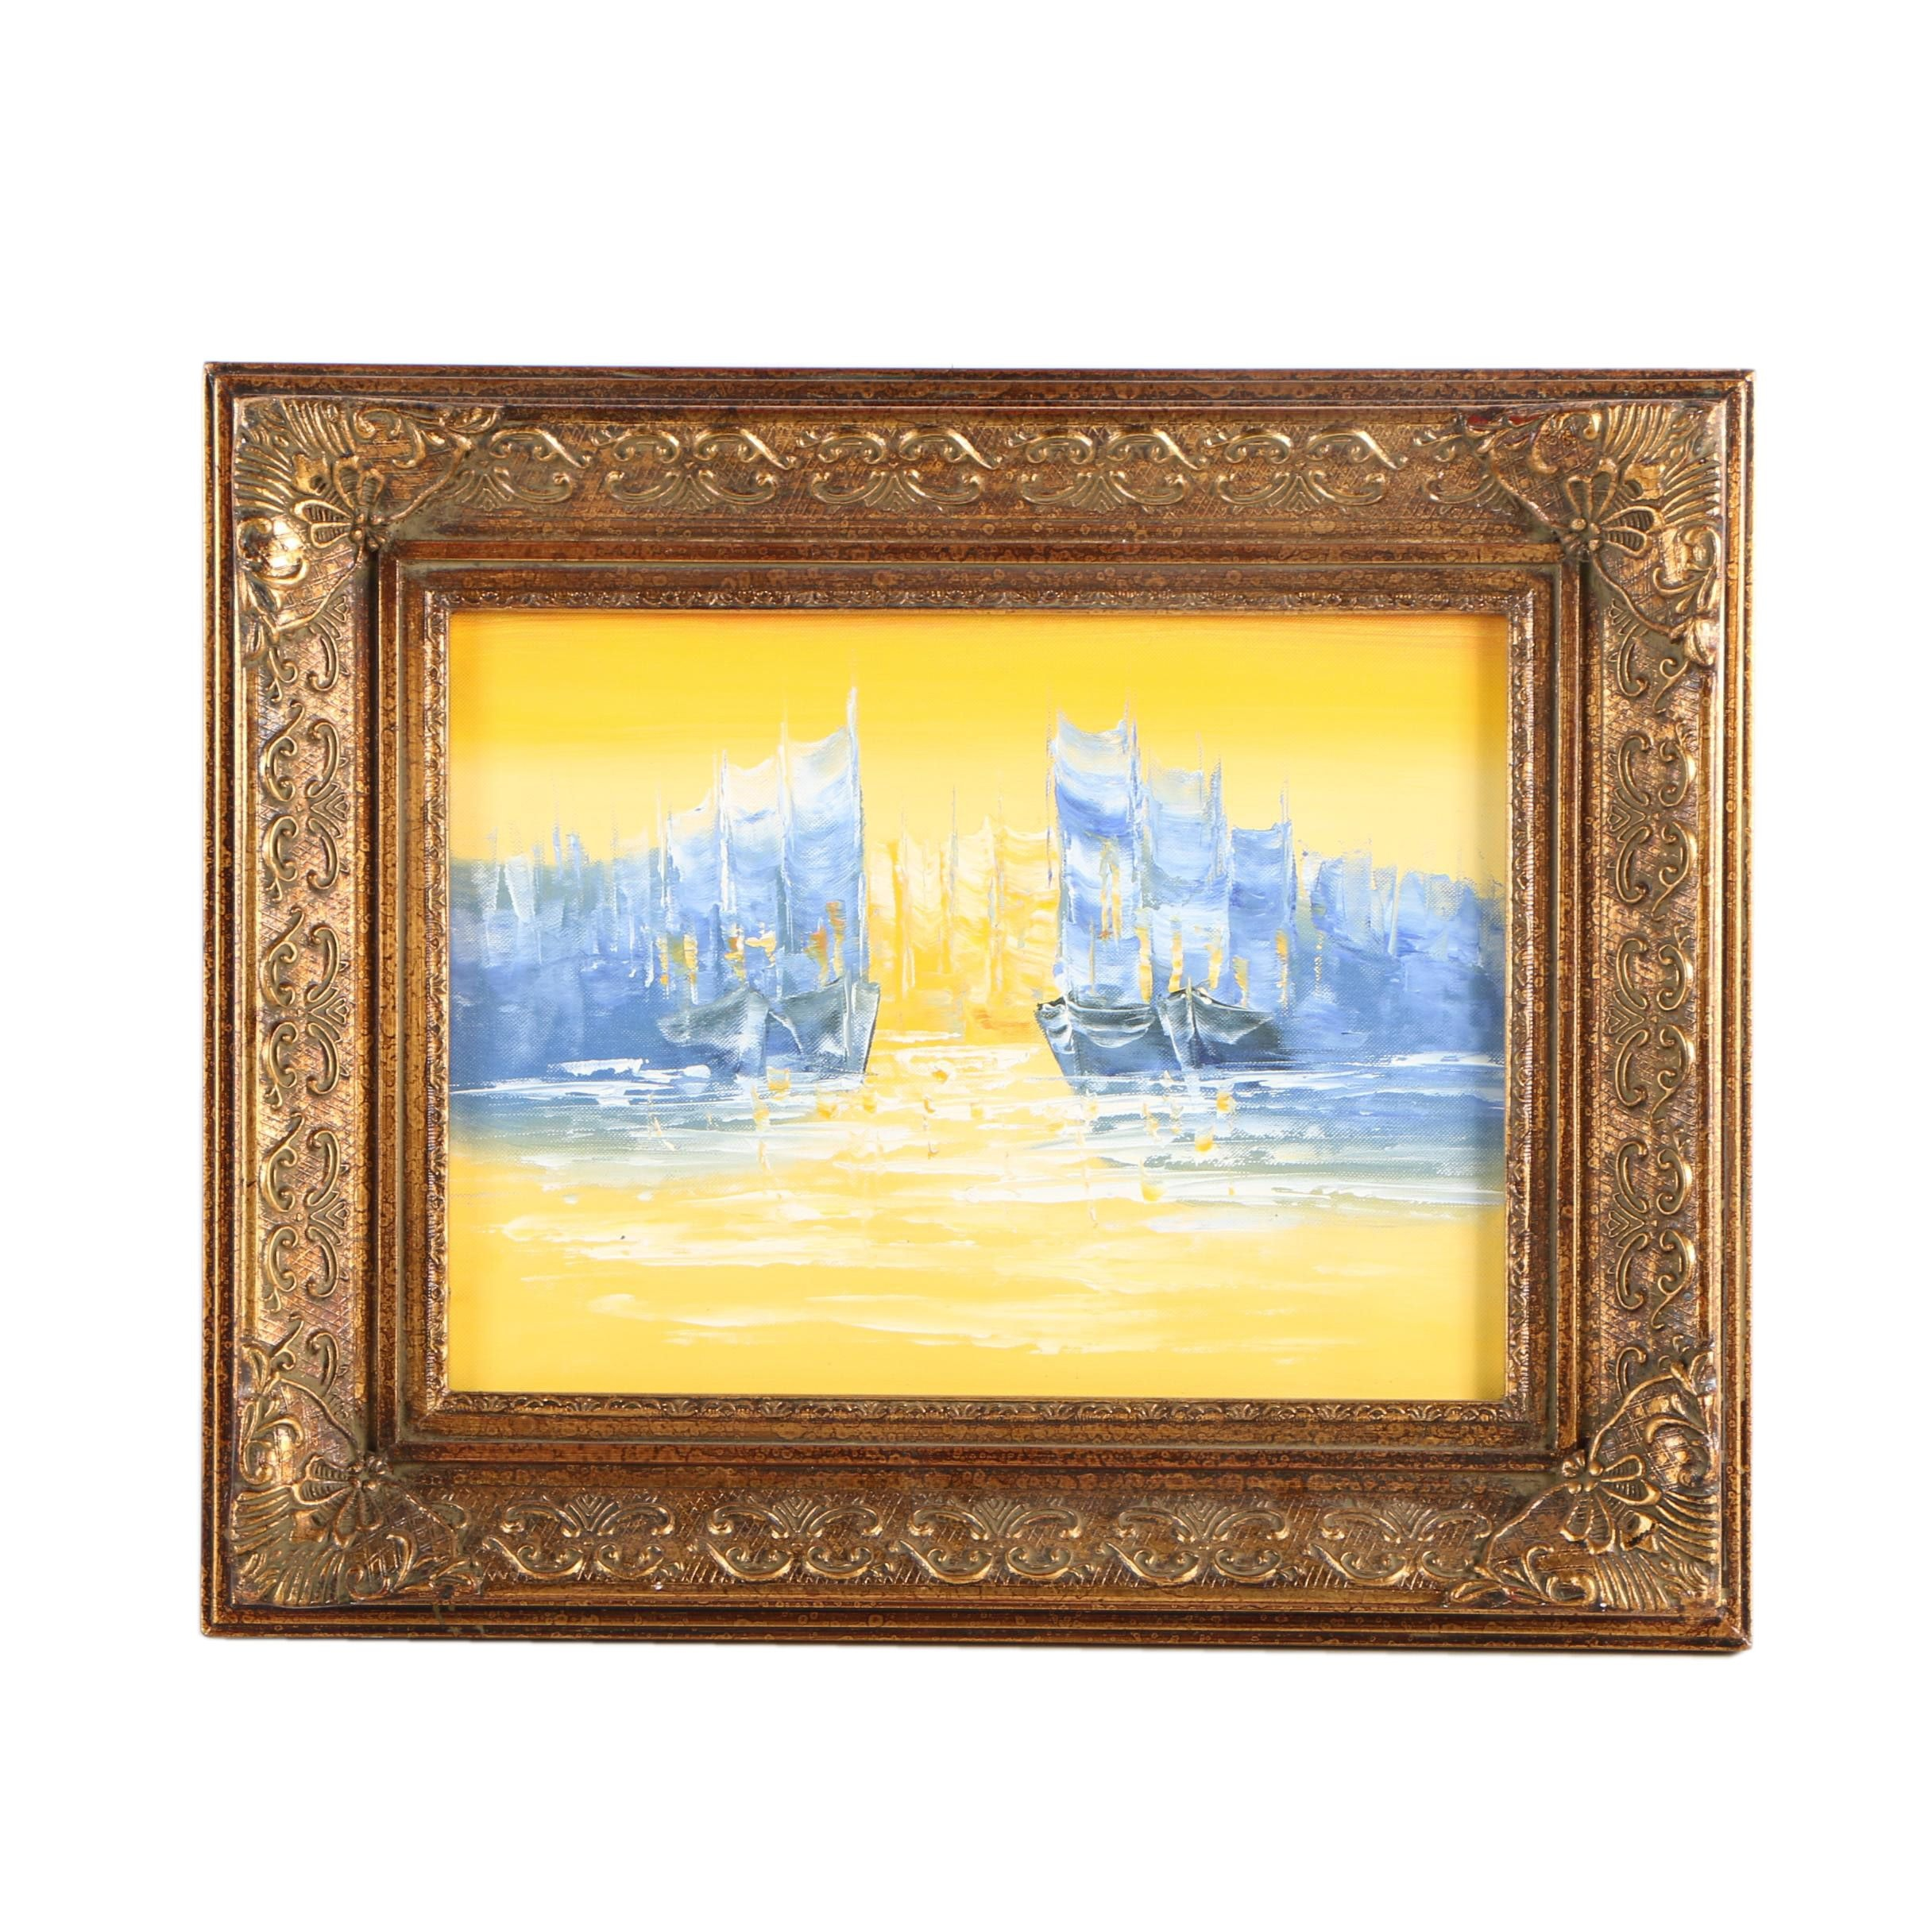 Abstract Oil Painting of Boats